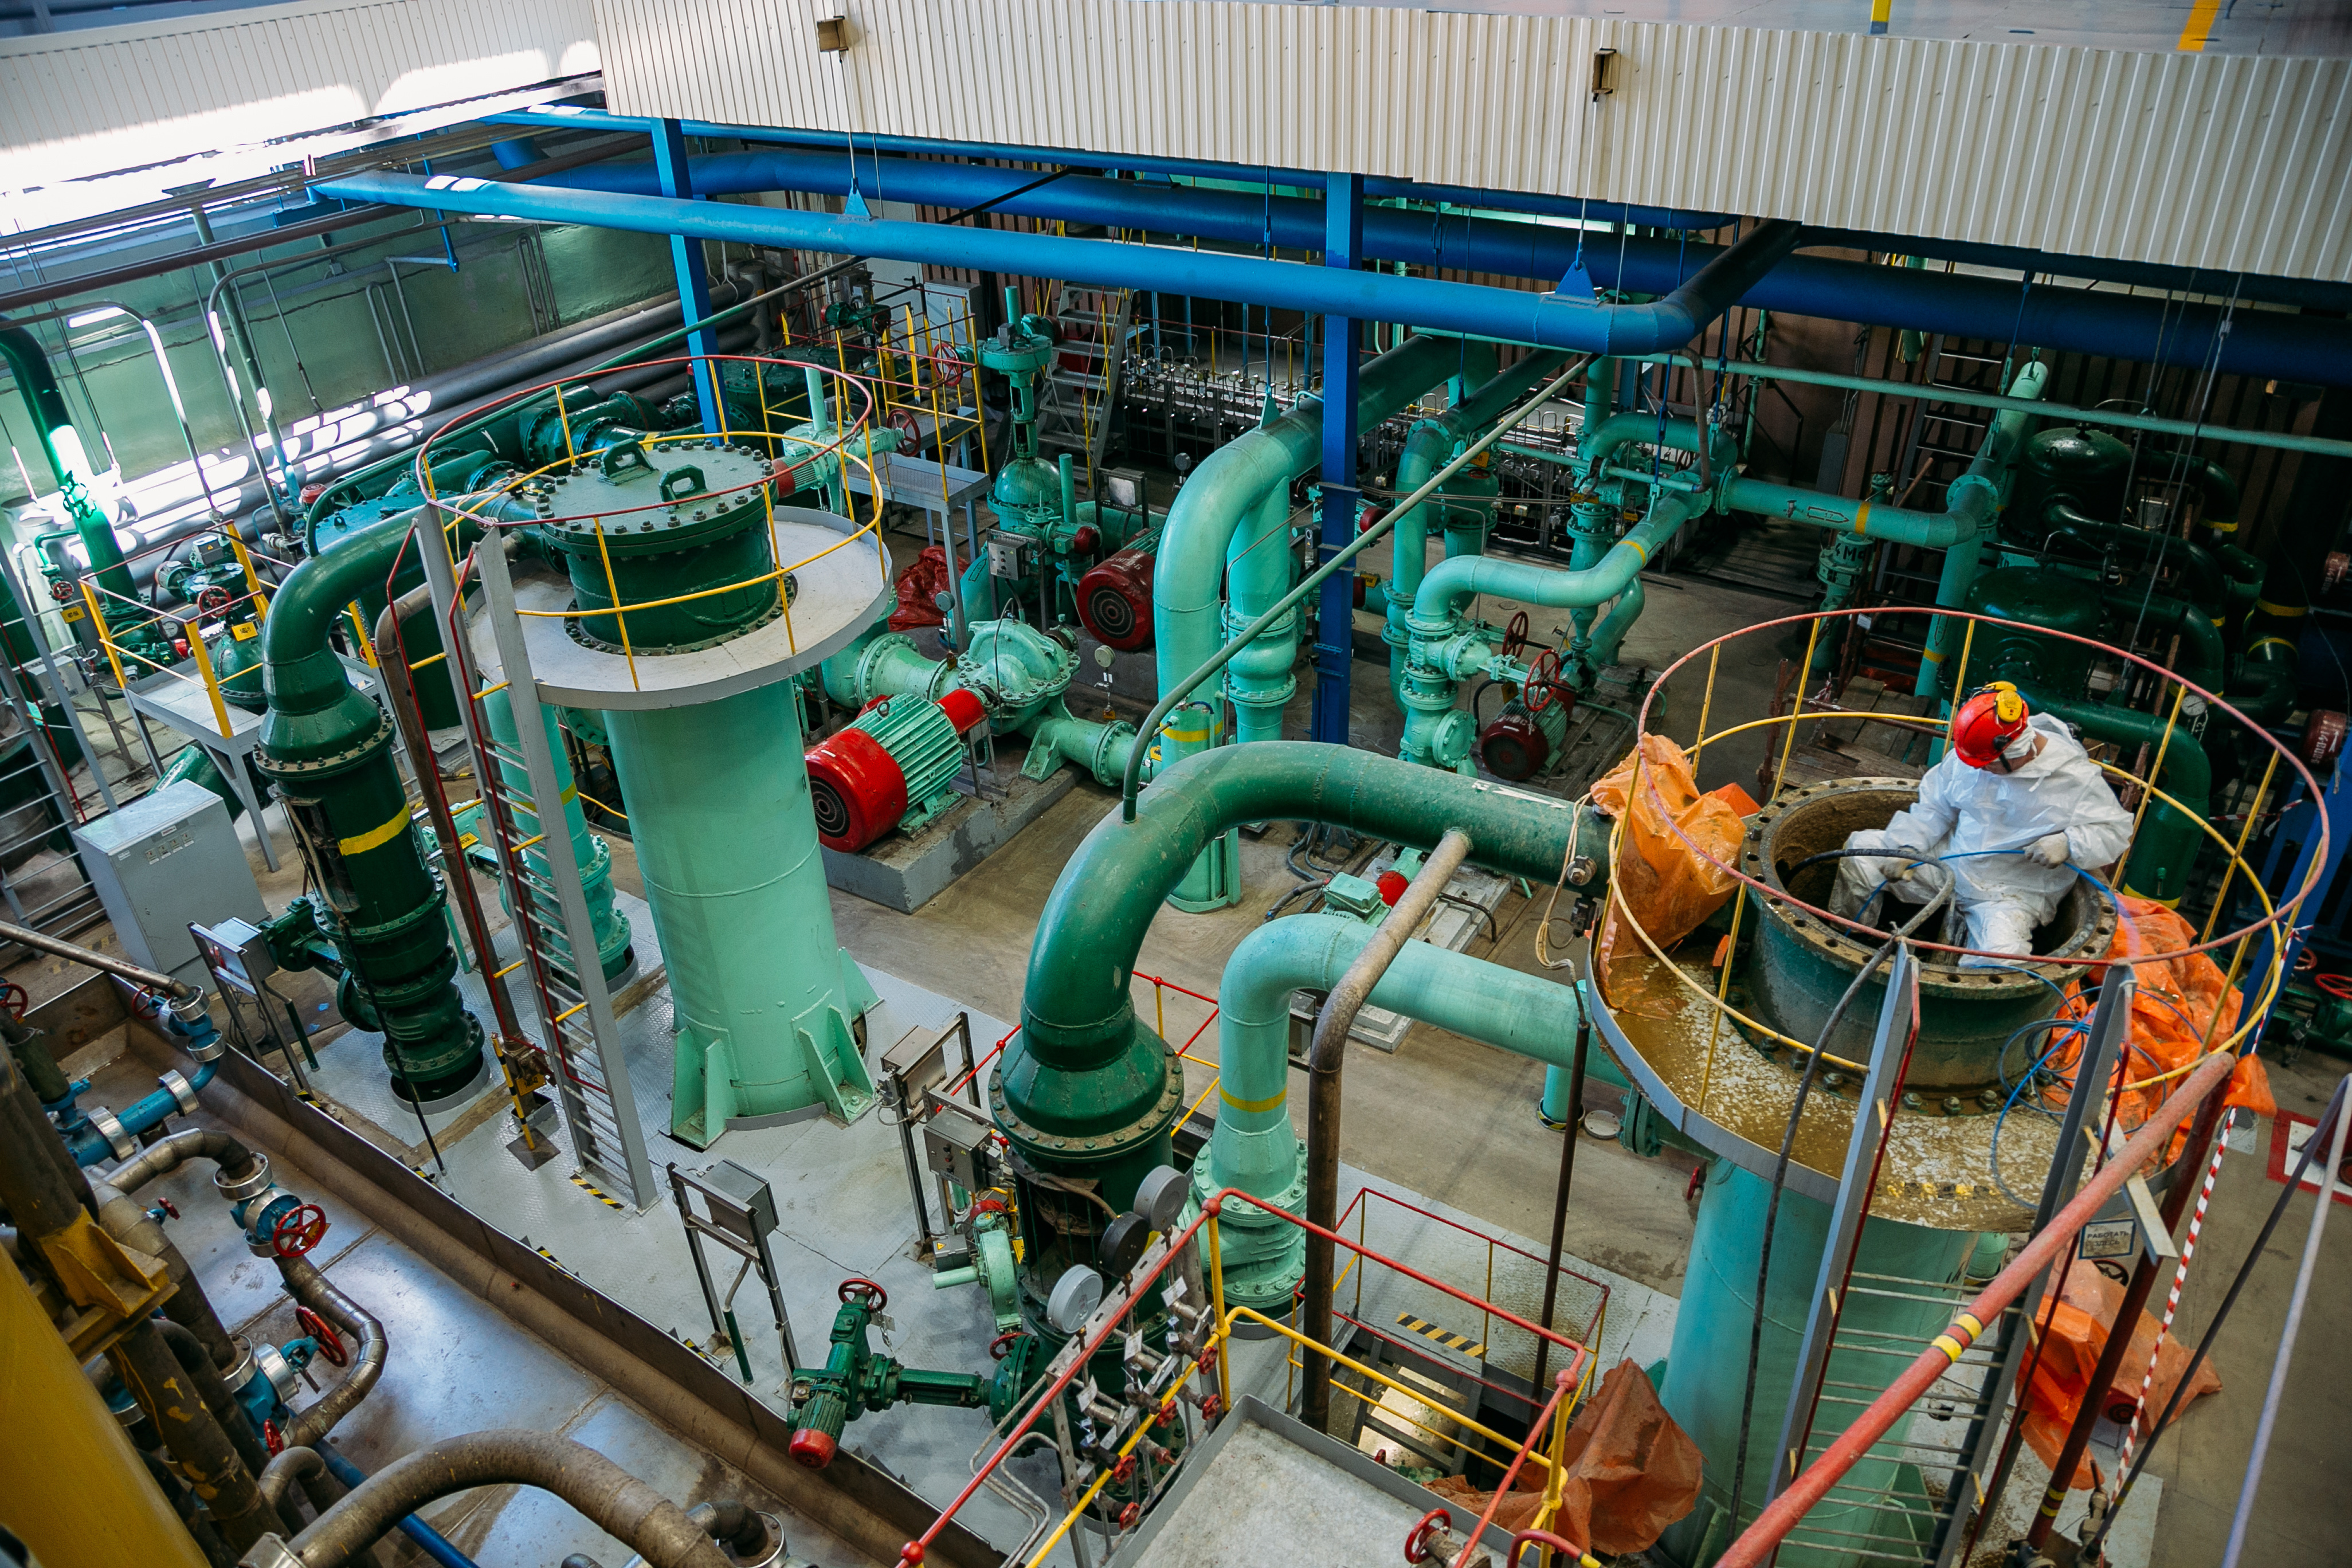 Nuclear Reactor Primary Piping Inspection with Eddyfi Technologies Robots